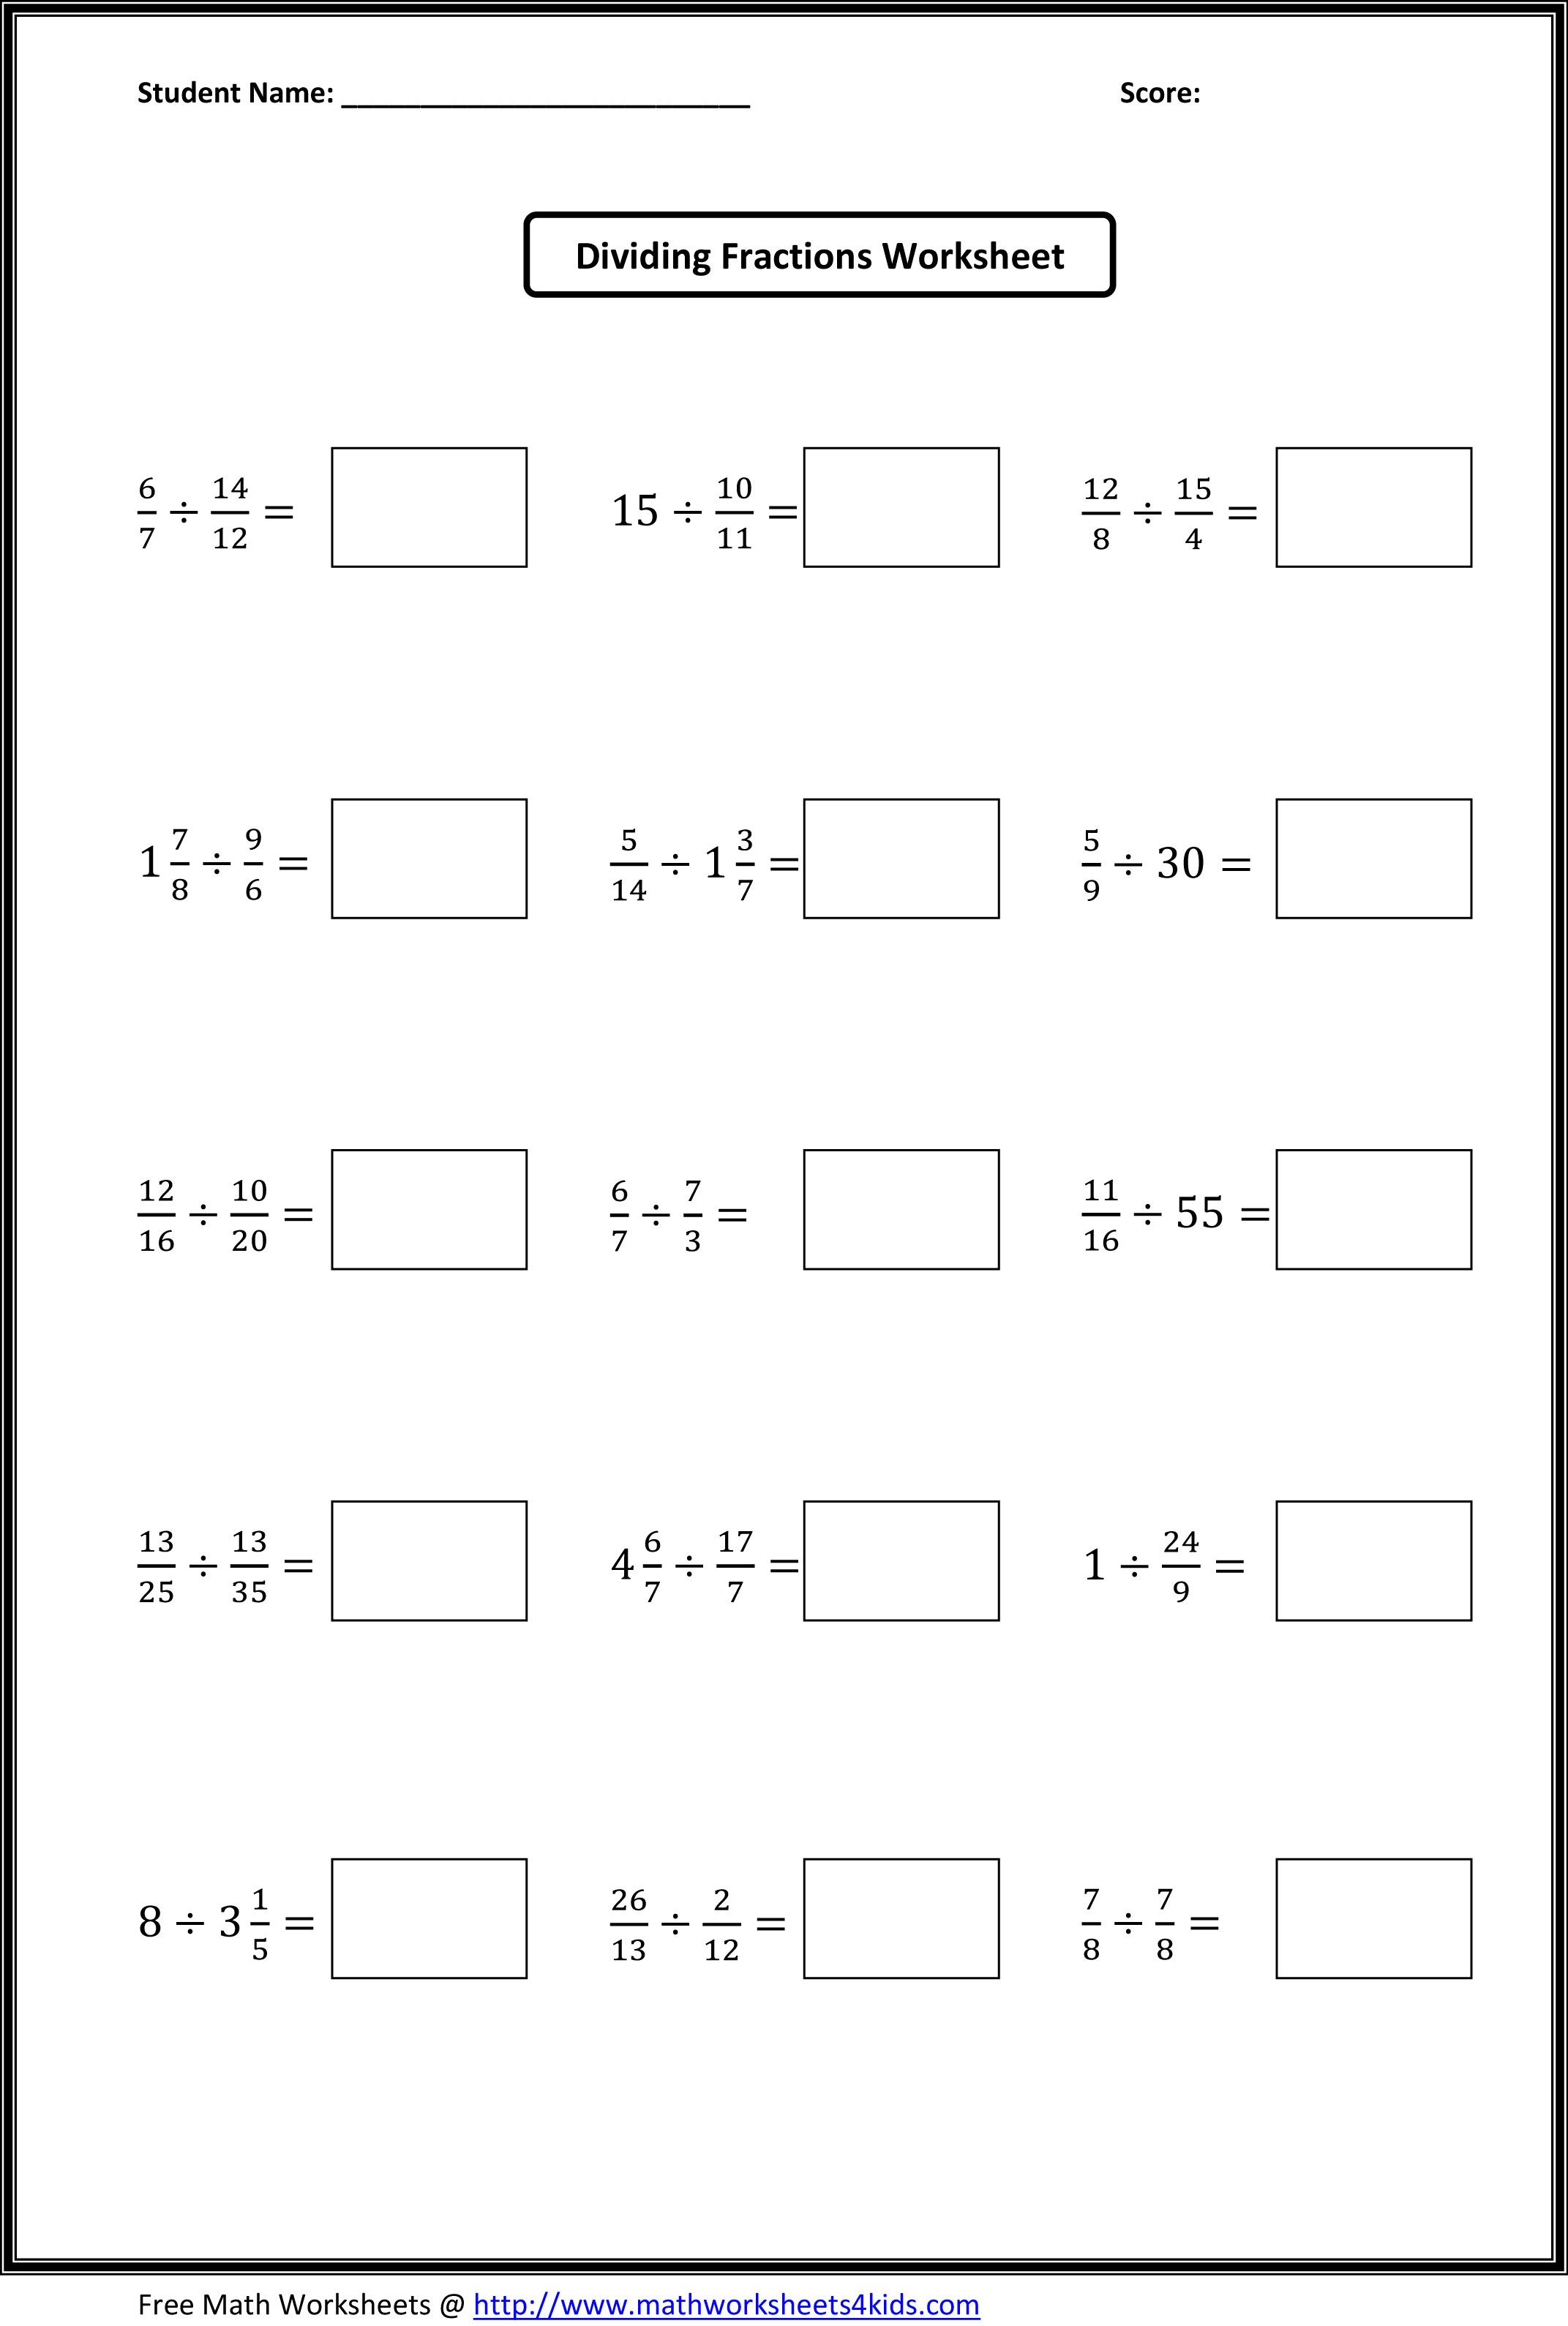 worksheet Dividing Fractions Worksheet 5th Grade dividing fractions worksheets whats new pinterest worksheets